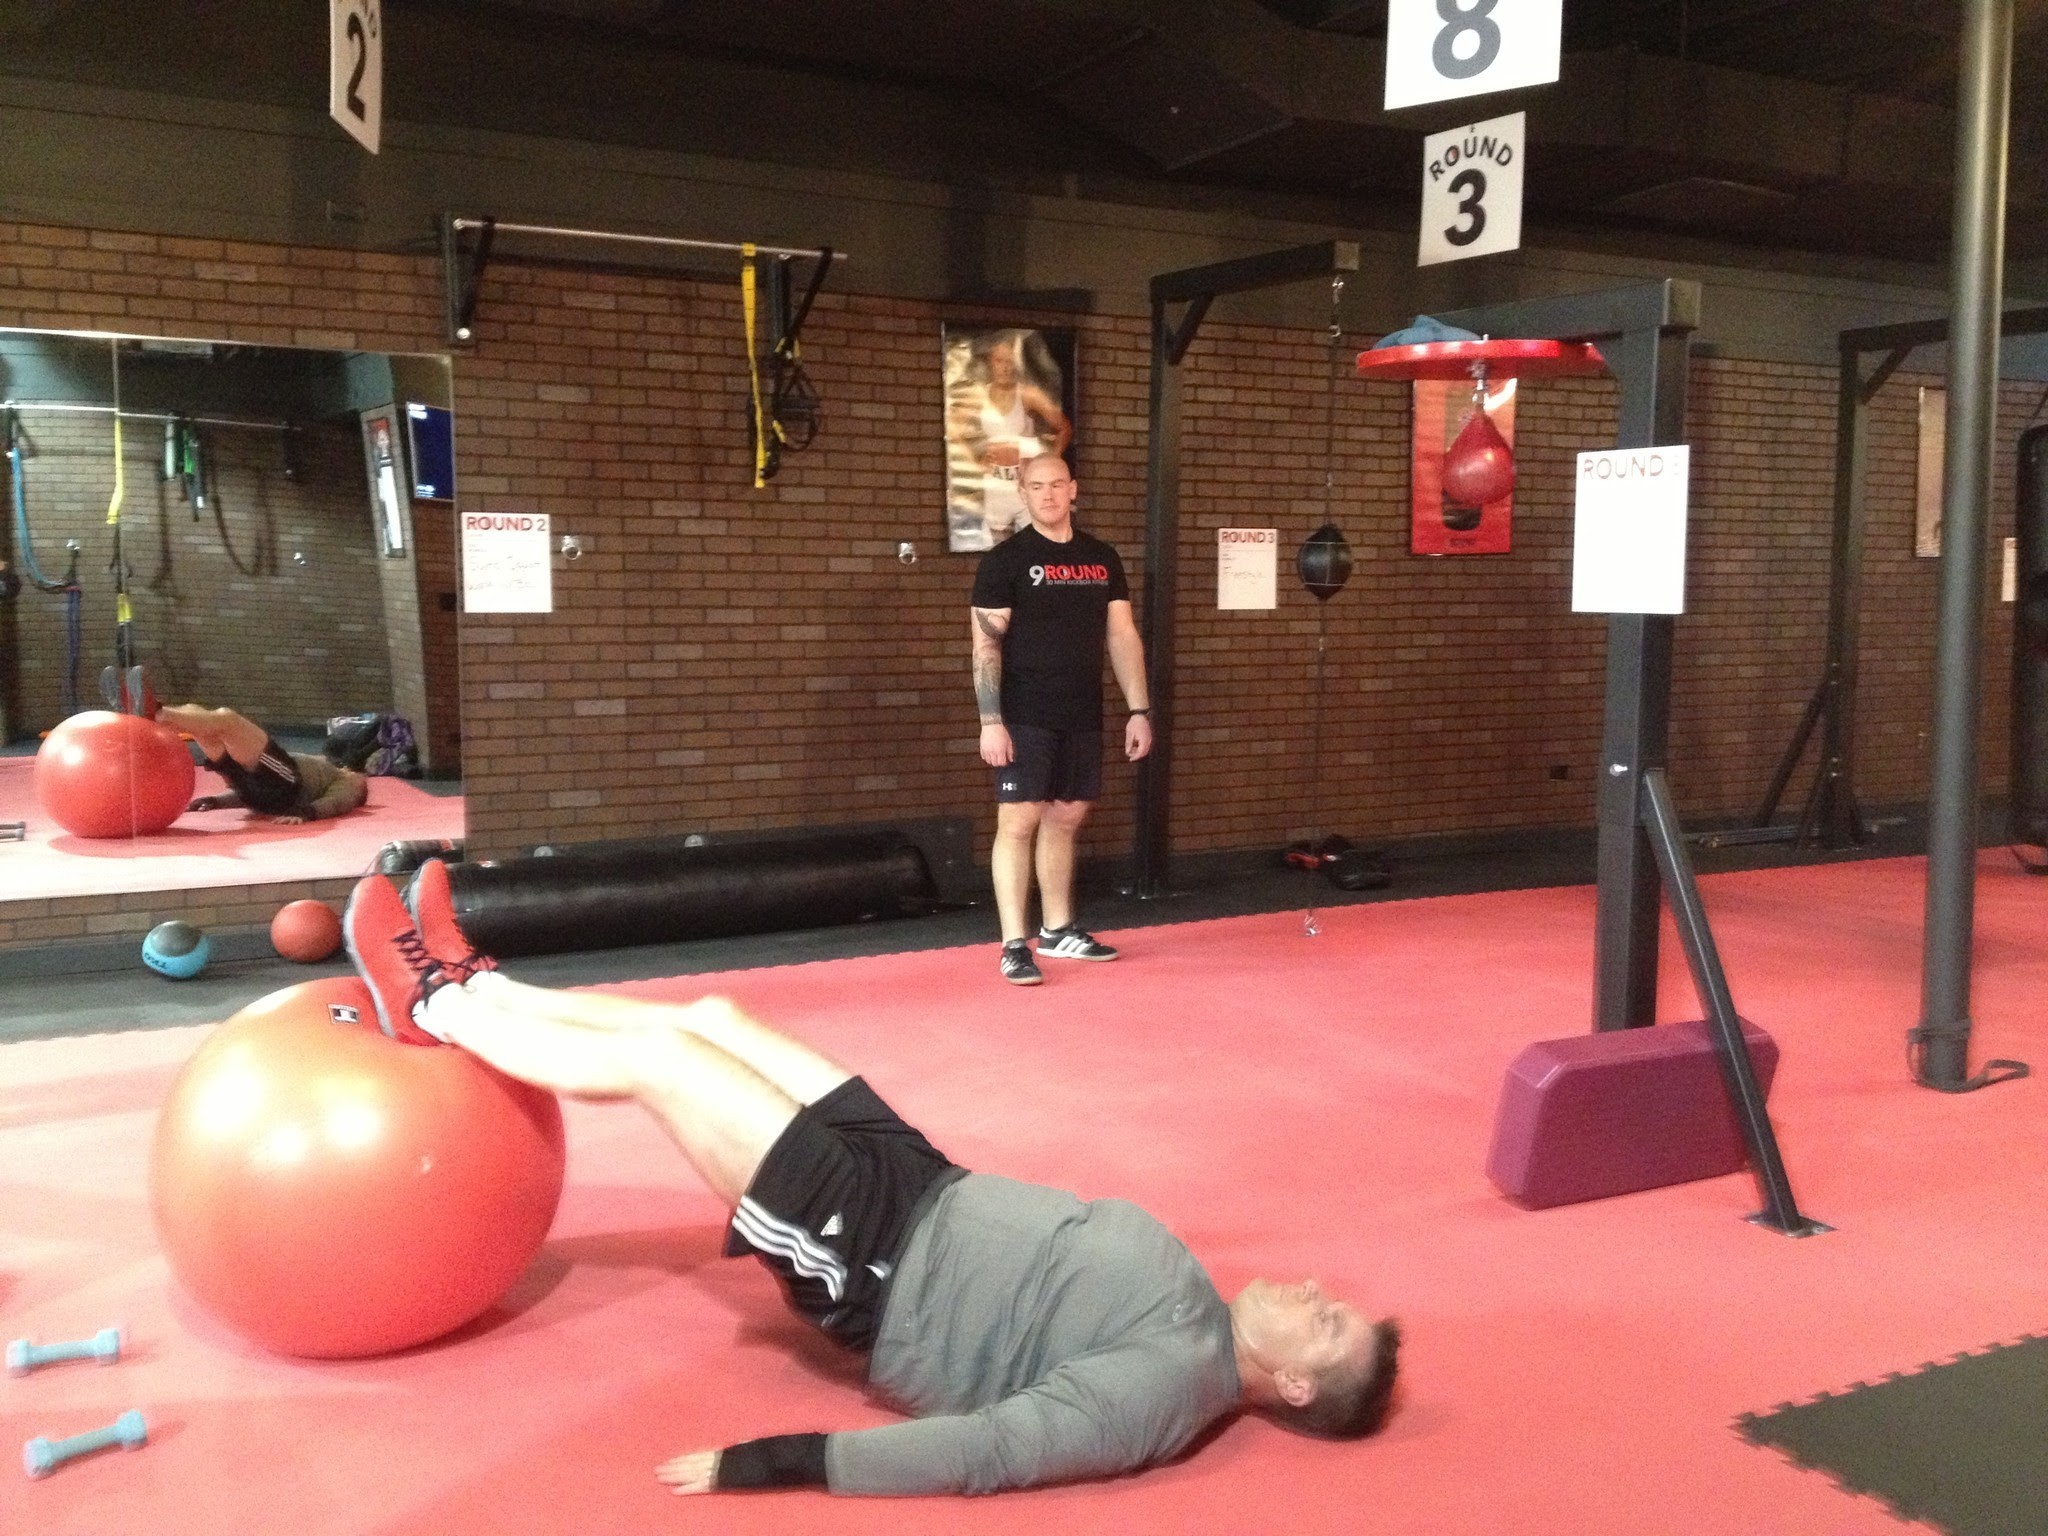 9Round Fitness and Kickboxing opens in downtown Barrington ...